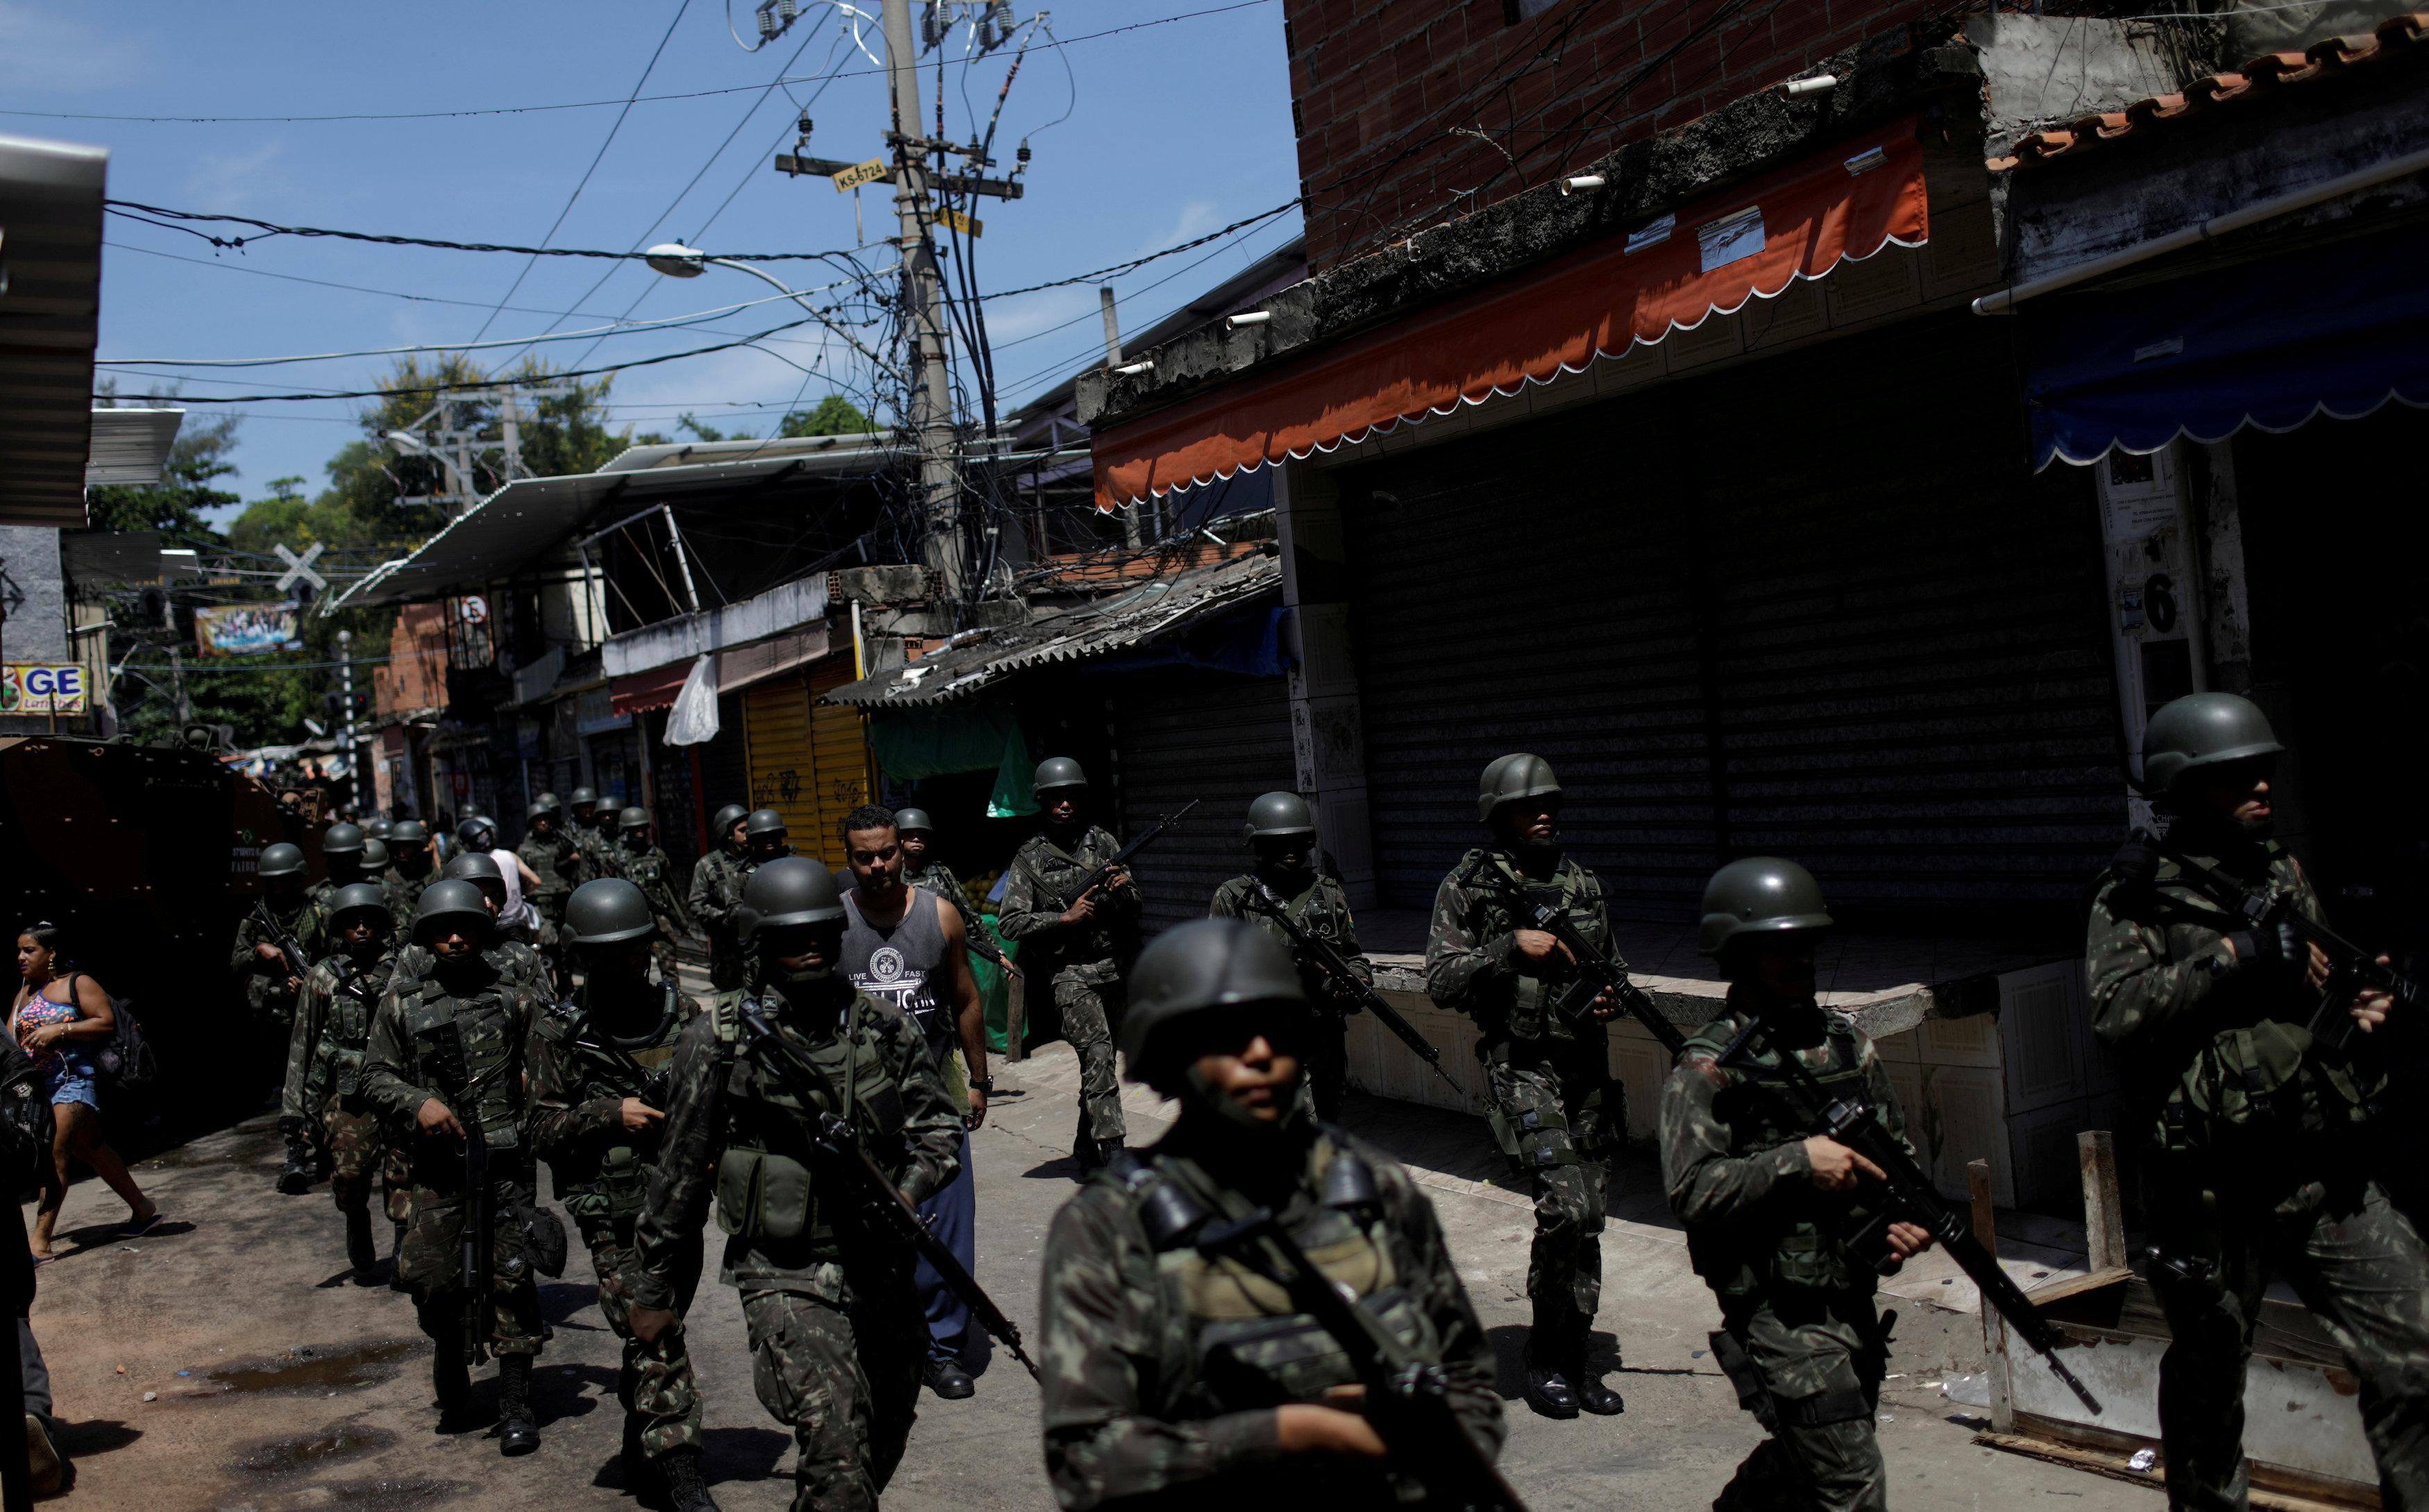 Armed Forces members patrol in Jacarezinho slum during an operation against drug gangs in Rio de Janeiro, Brazil January 18, 2018. Ricardo Moraes/File photo